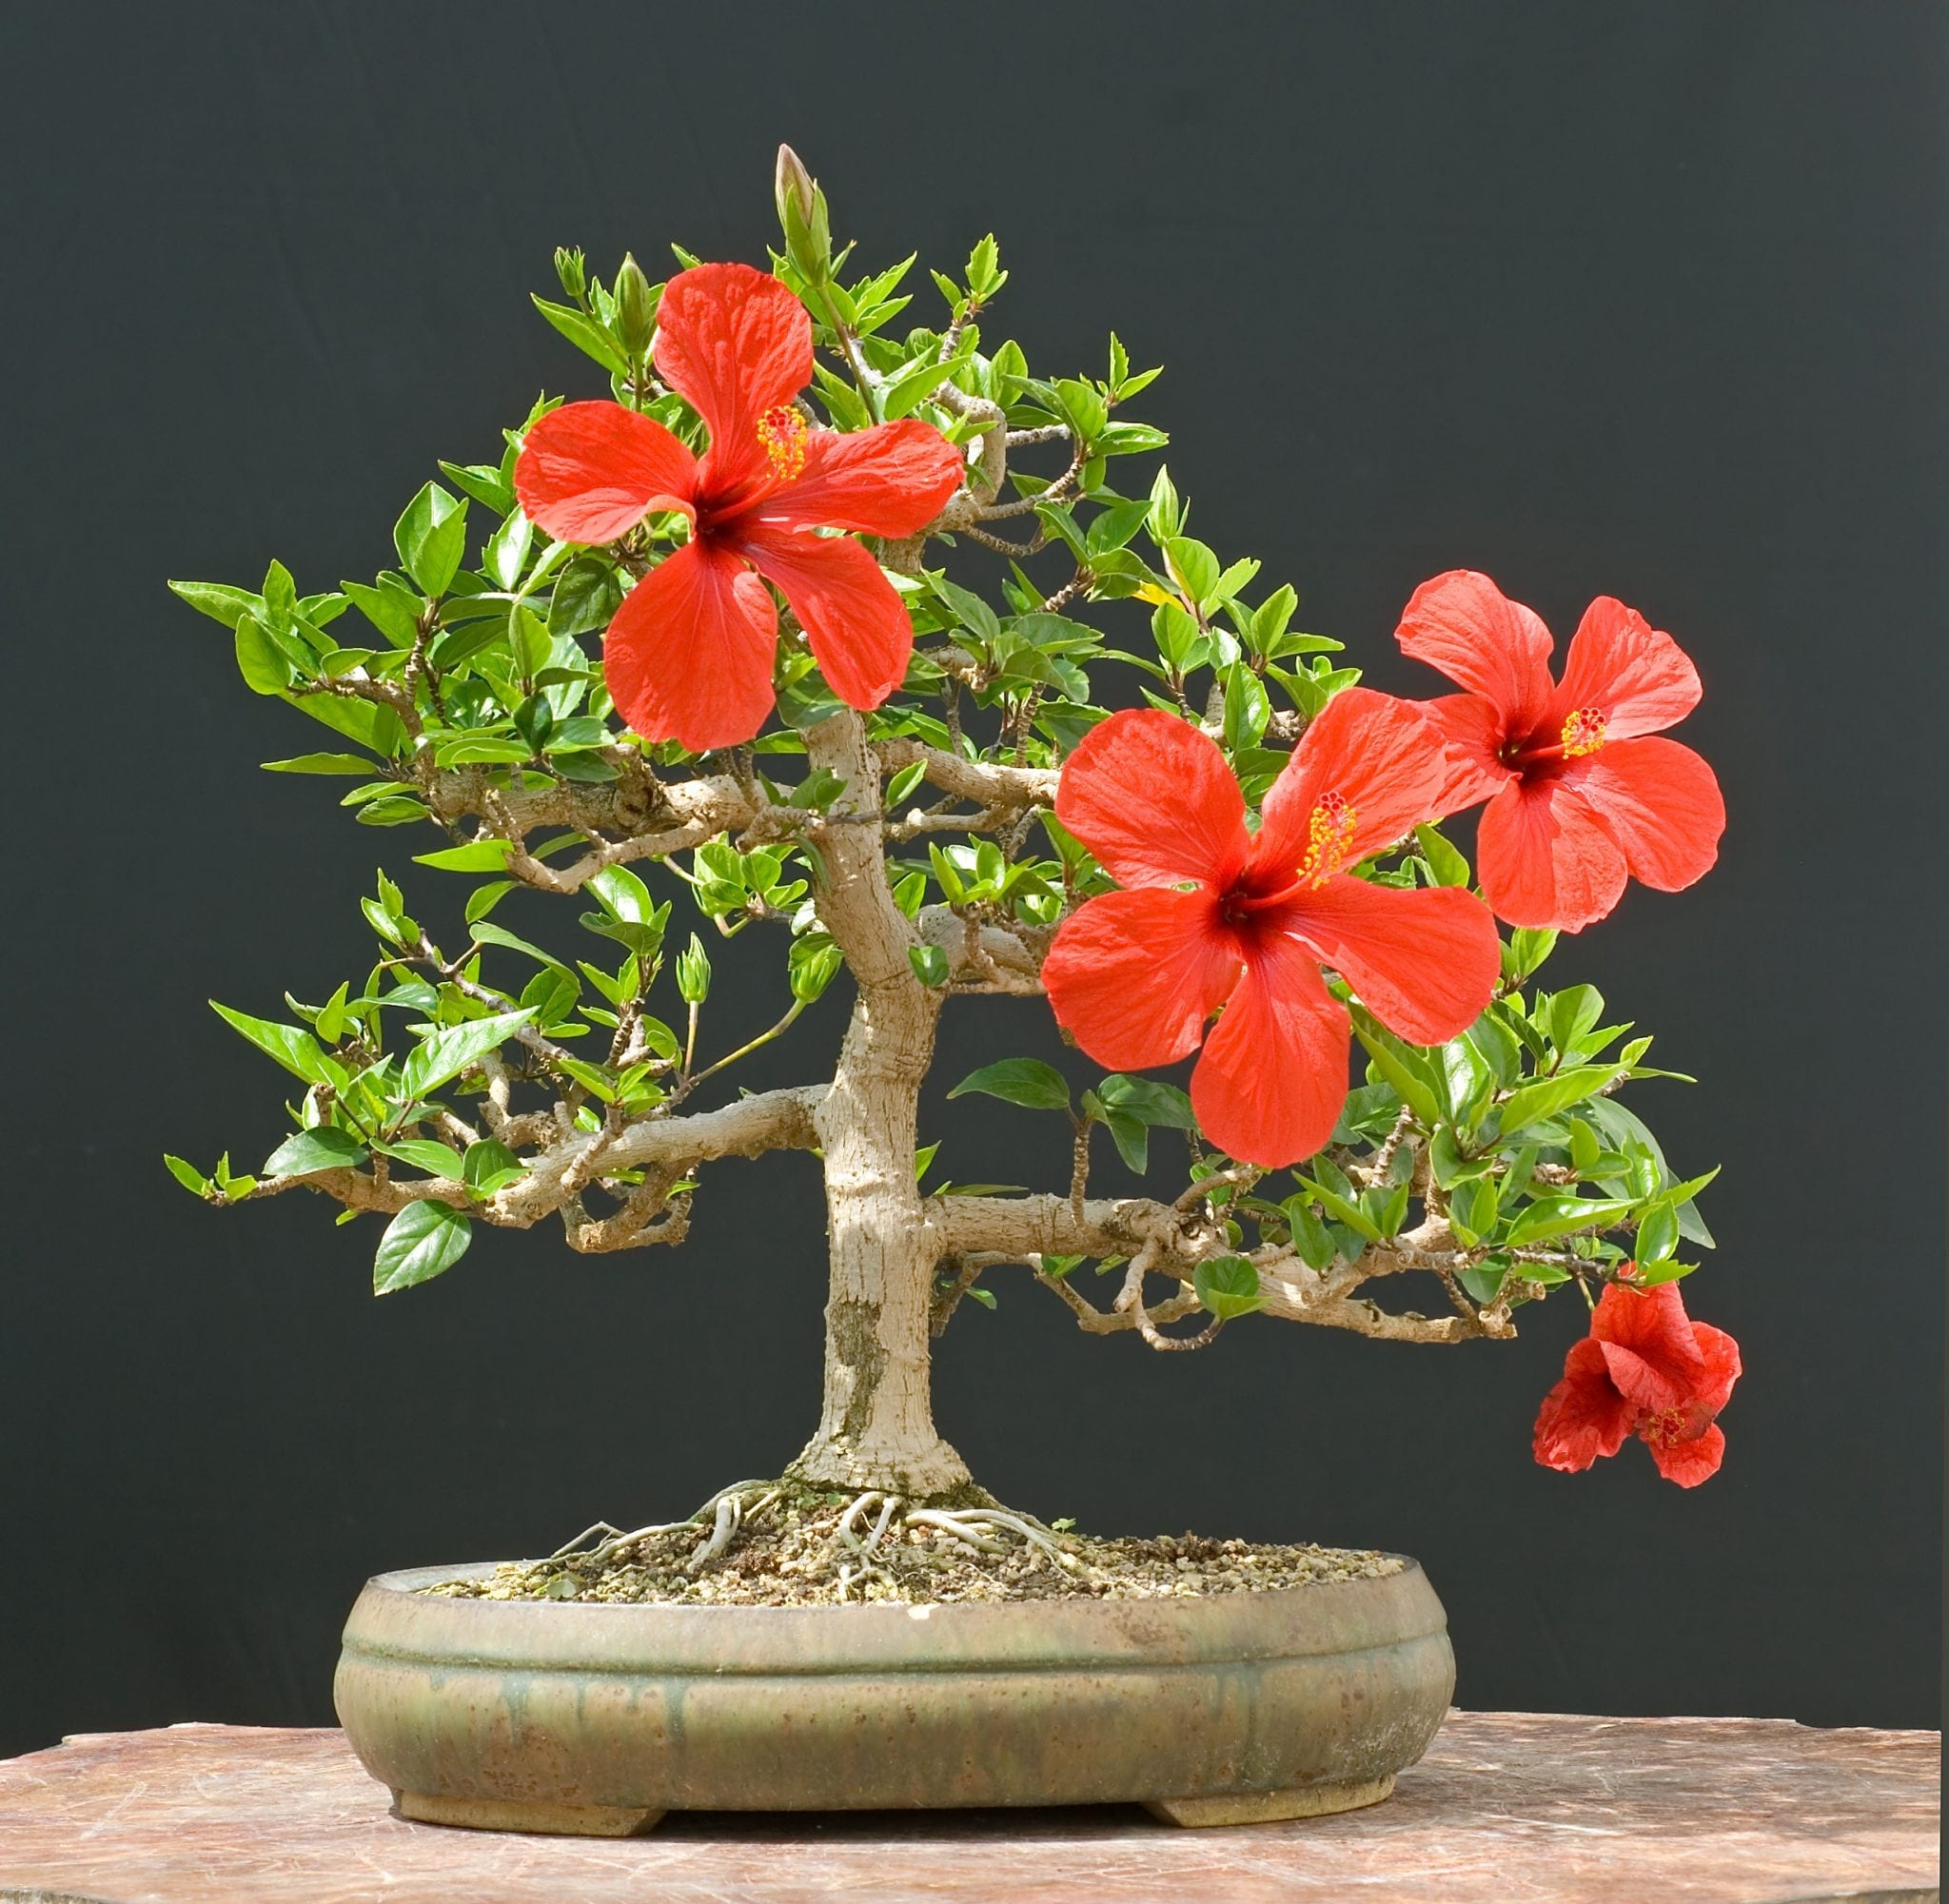 Hibiscus Bonsai Tree